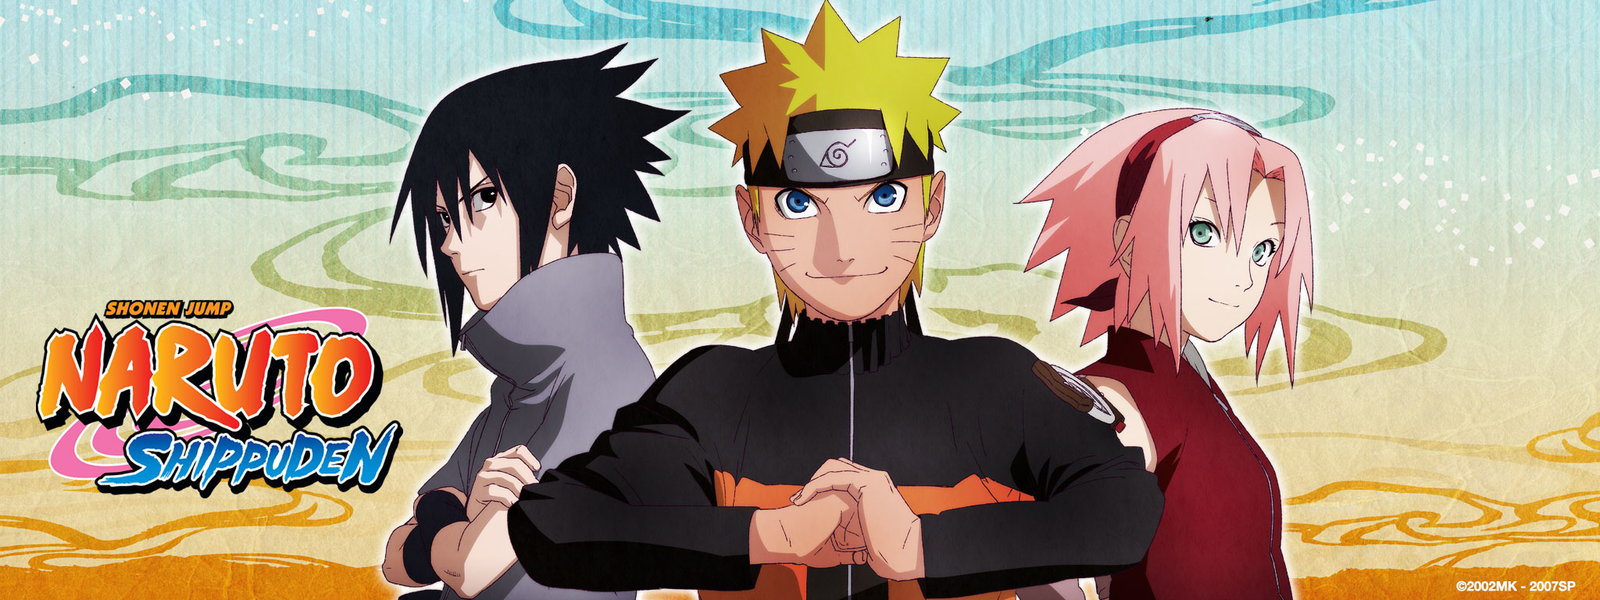 Photo of  Five Reasons Why Naruto Is a Special Anime.